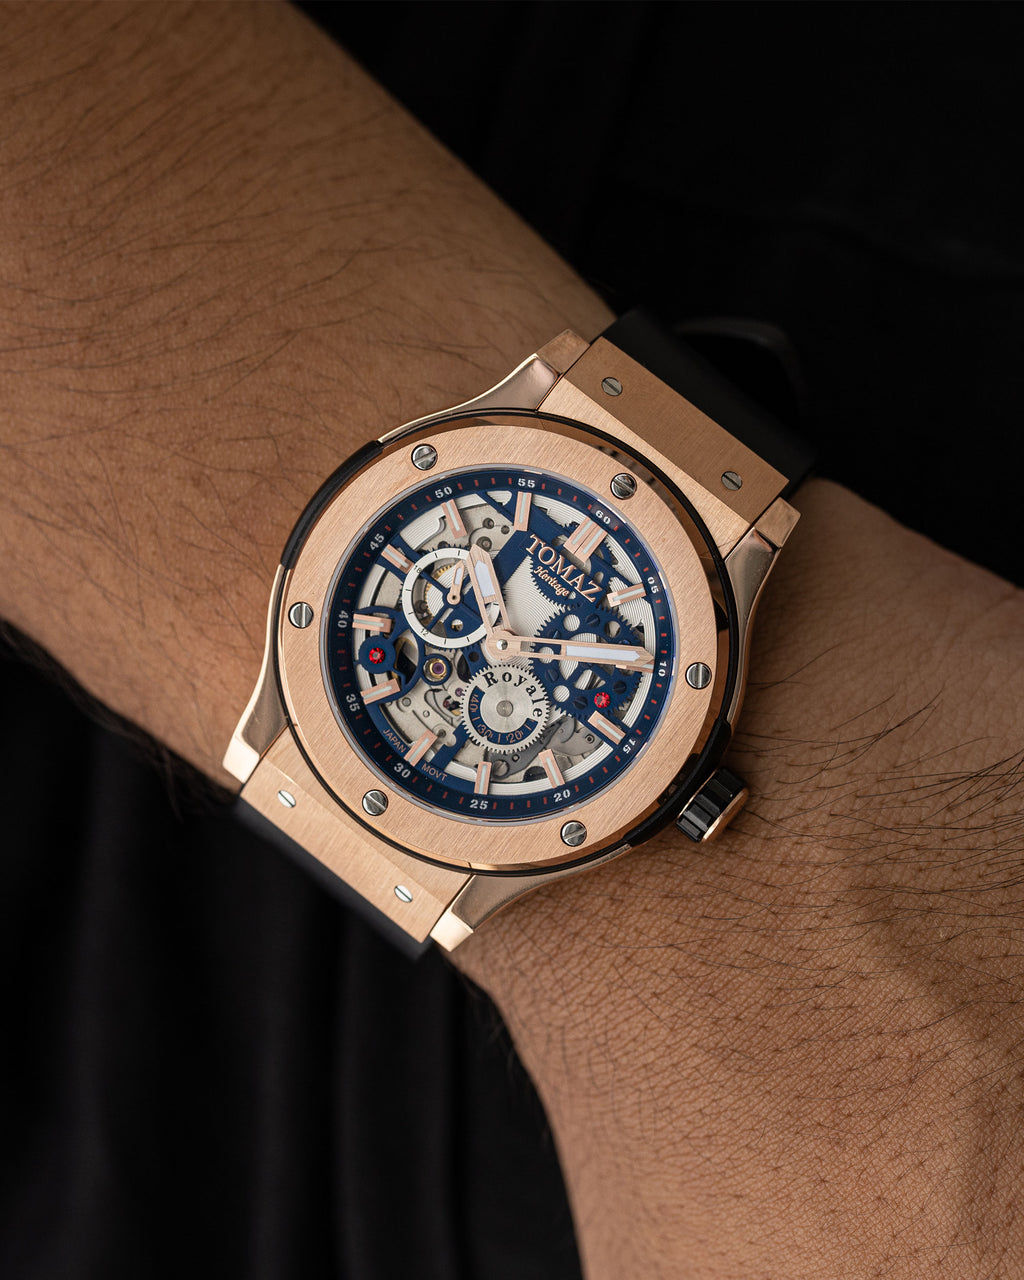 Tomaz Men's Watch TW014-D3 (Rose Gold/Navy)